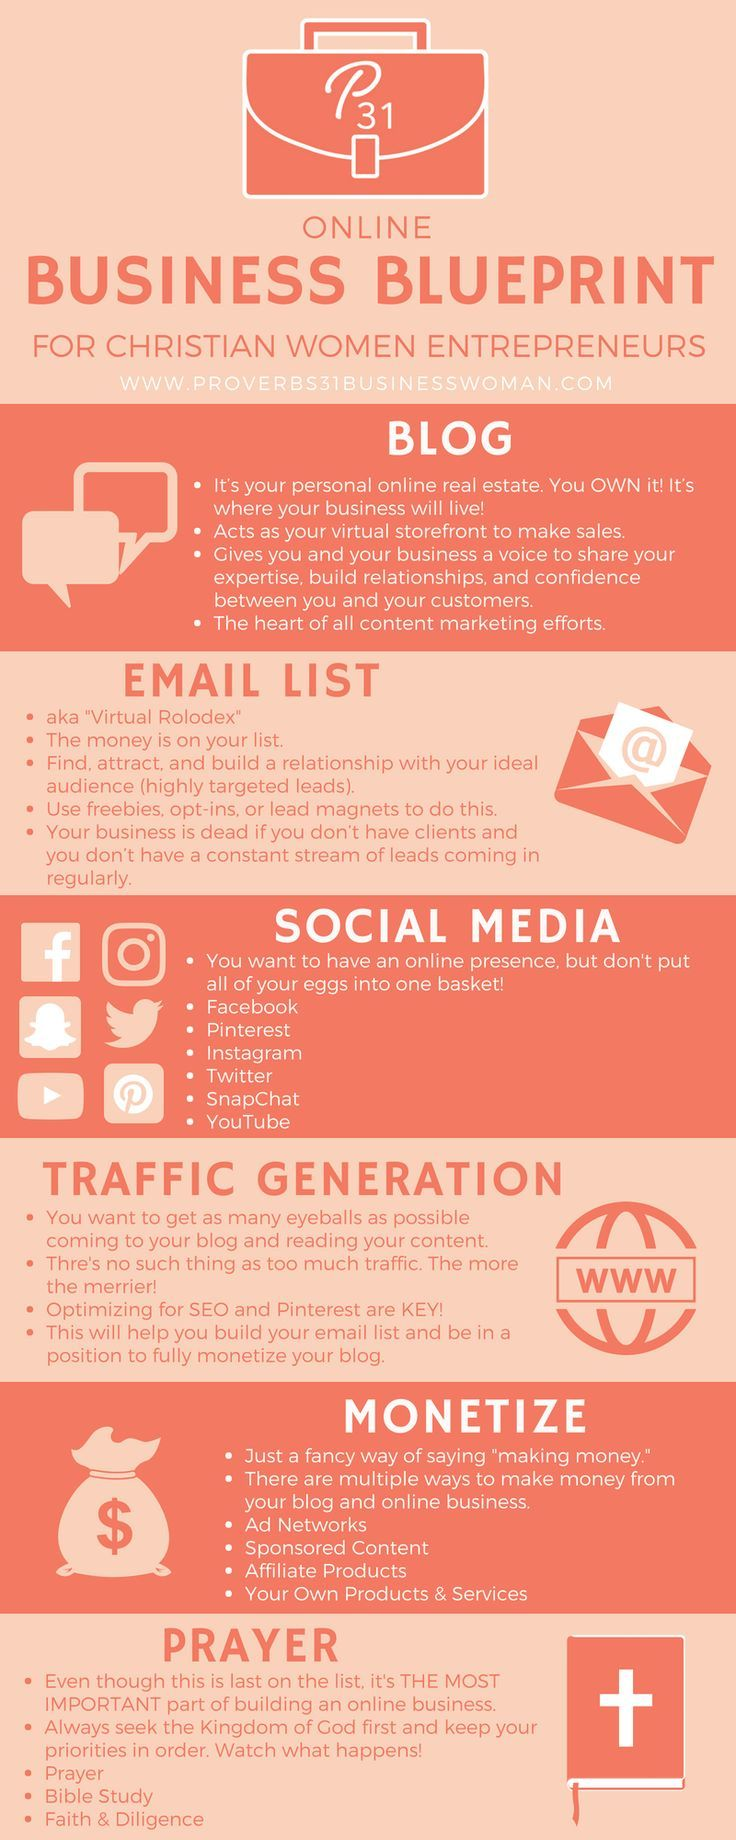 Online business blueprint online business business and blogging malvernweather Choice Image